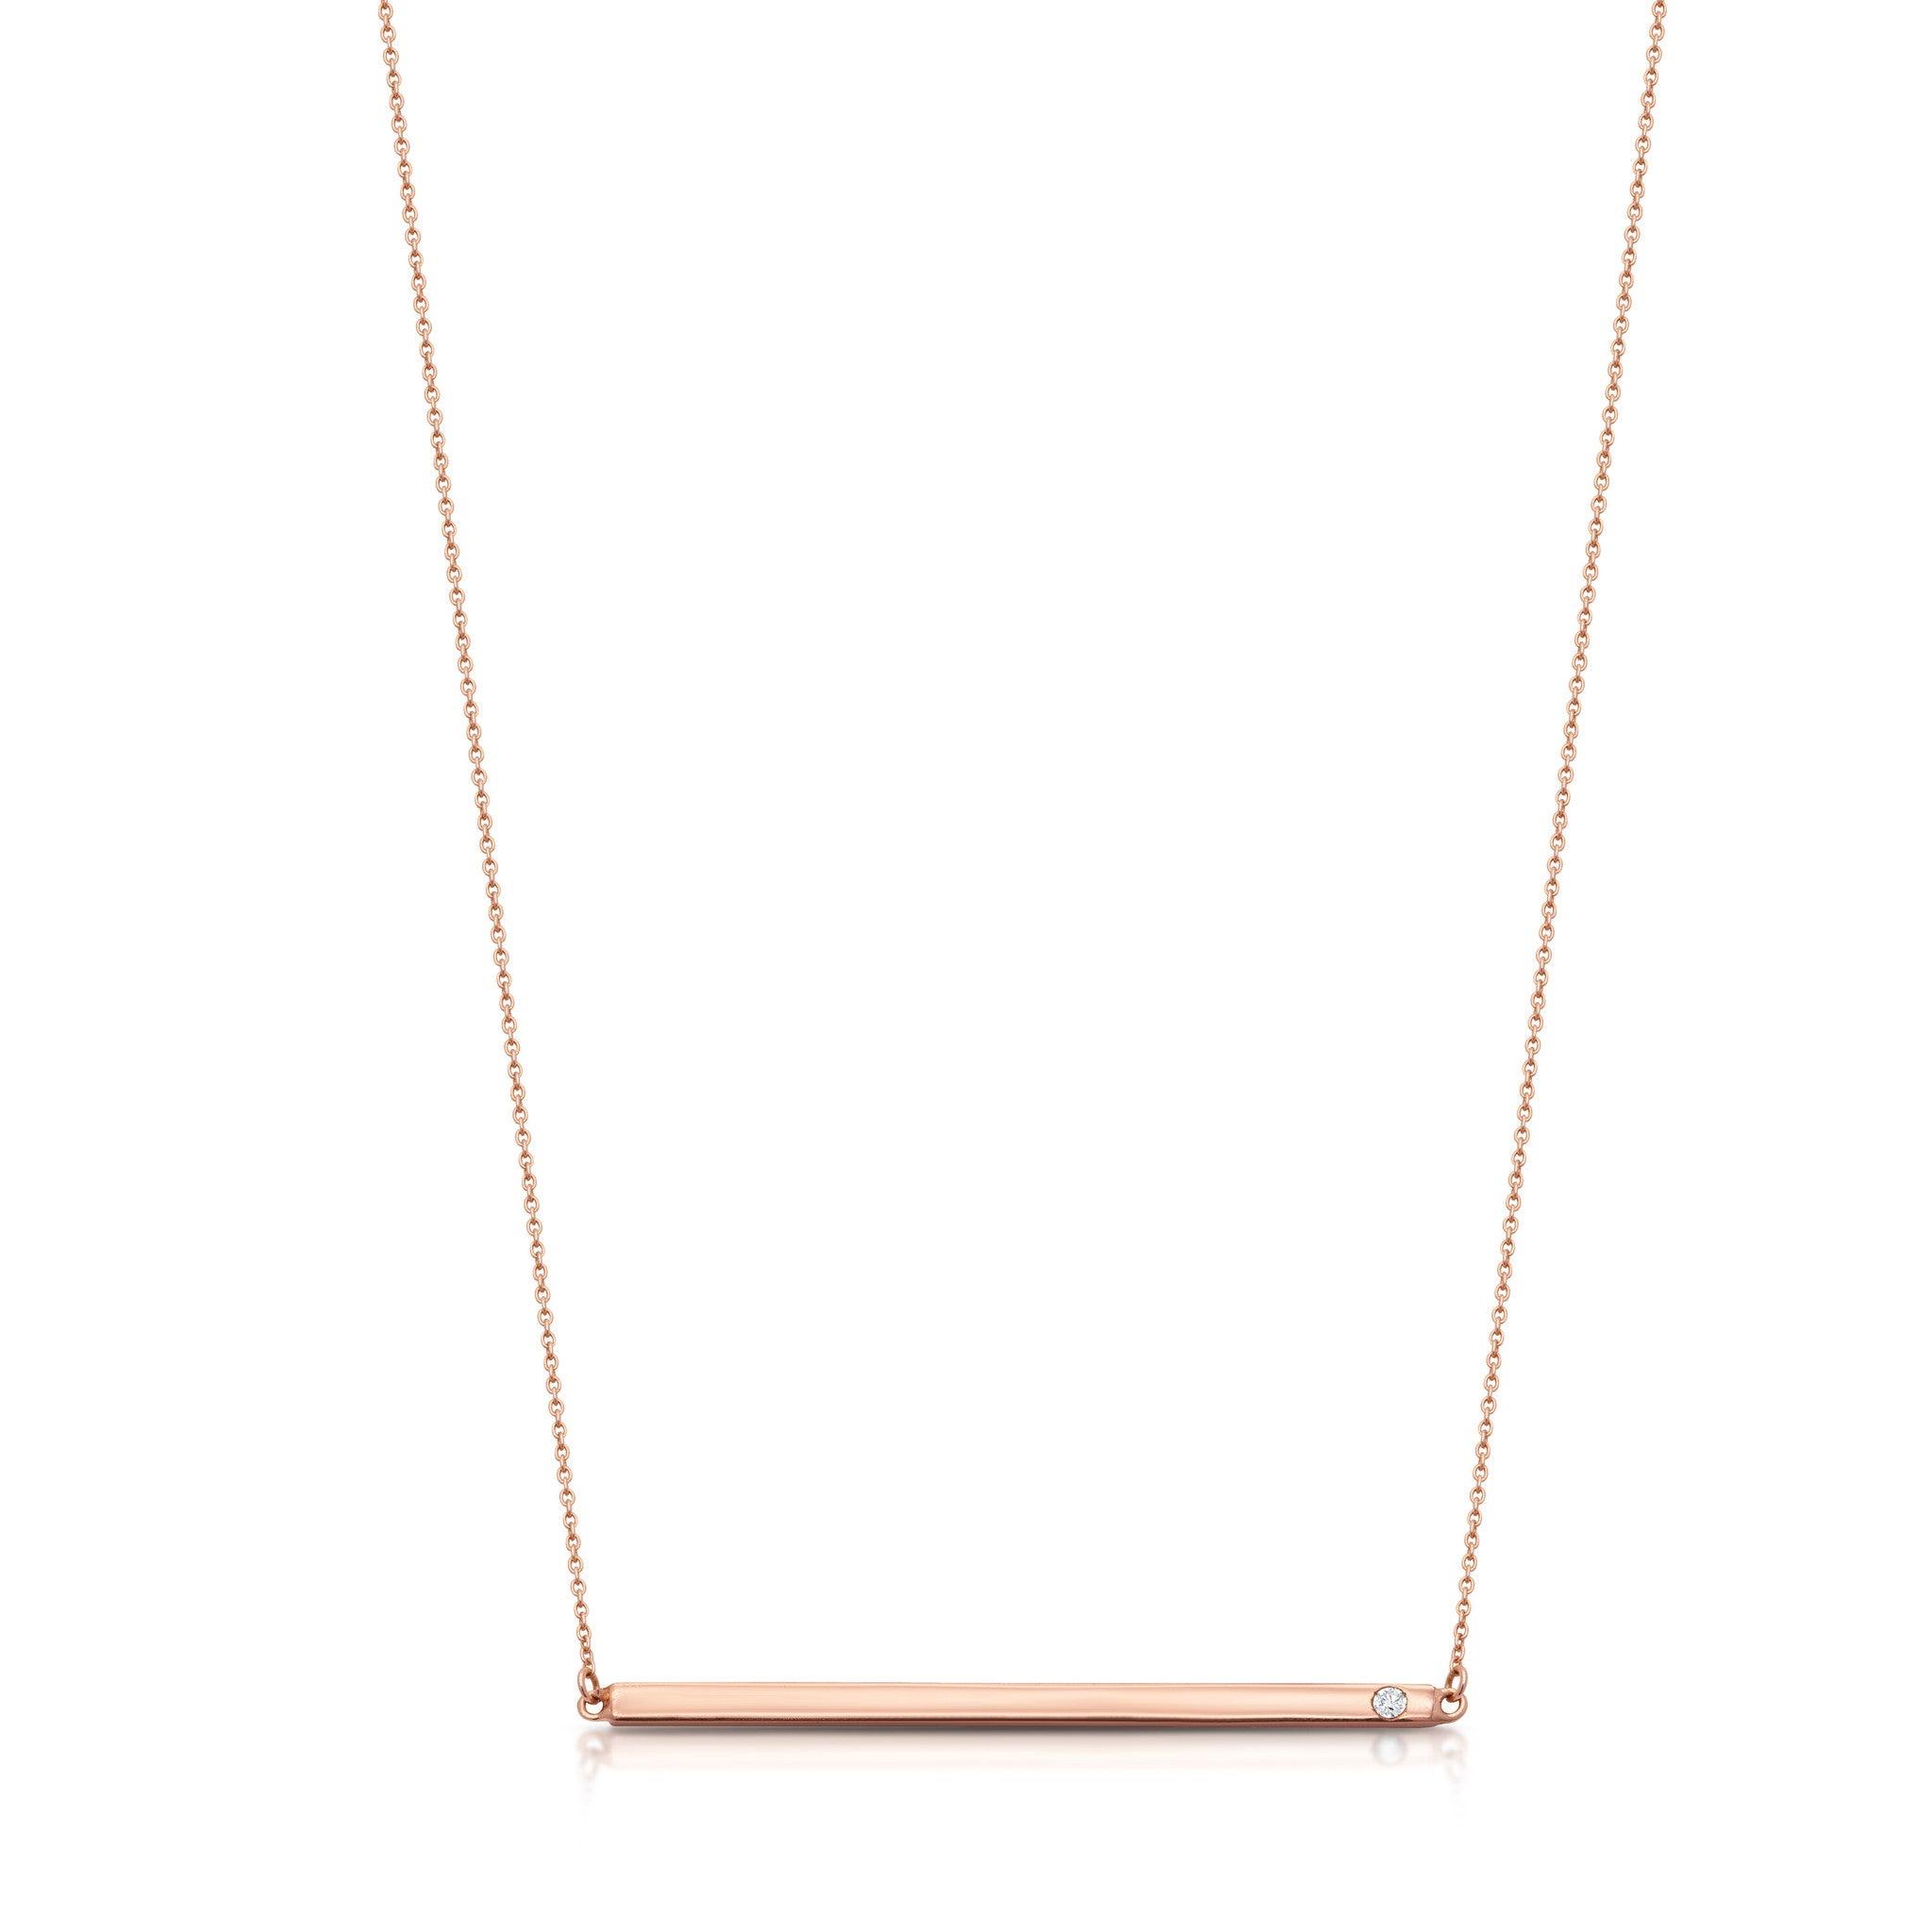 pendant necklace handmade gold necklaces jewelry hammered bar